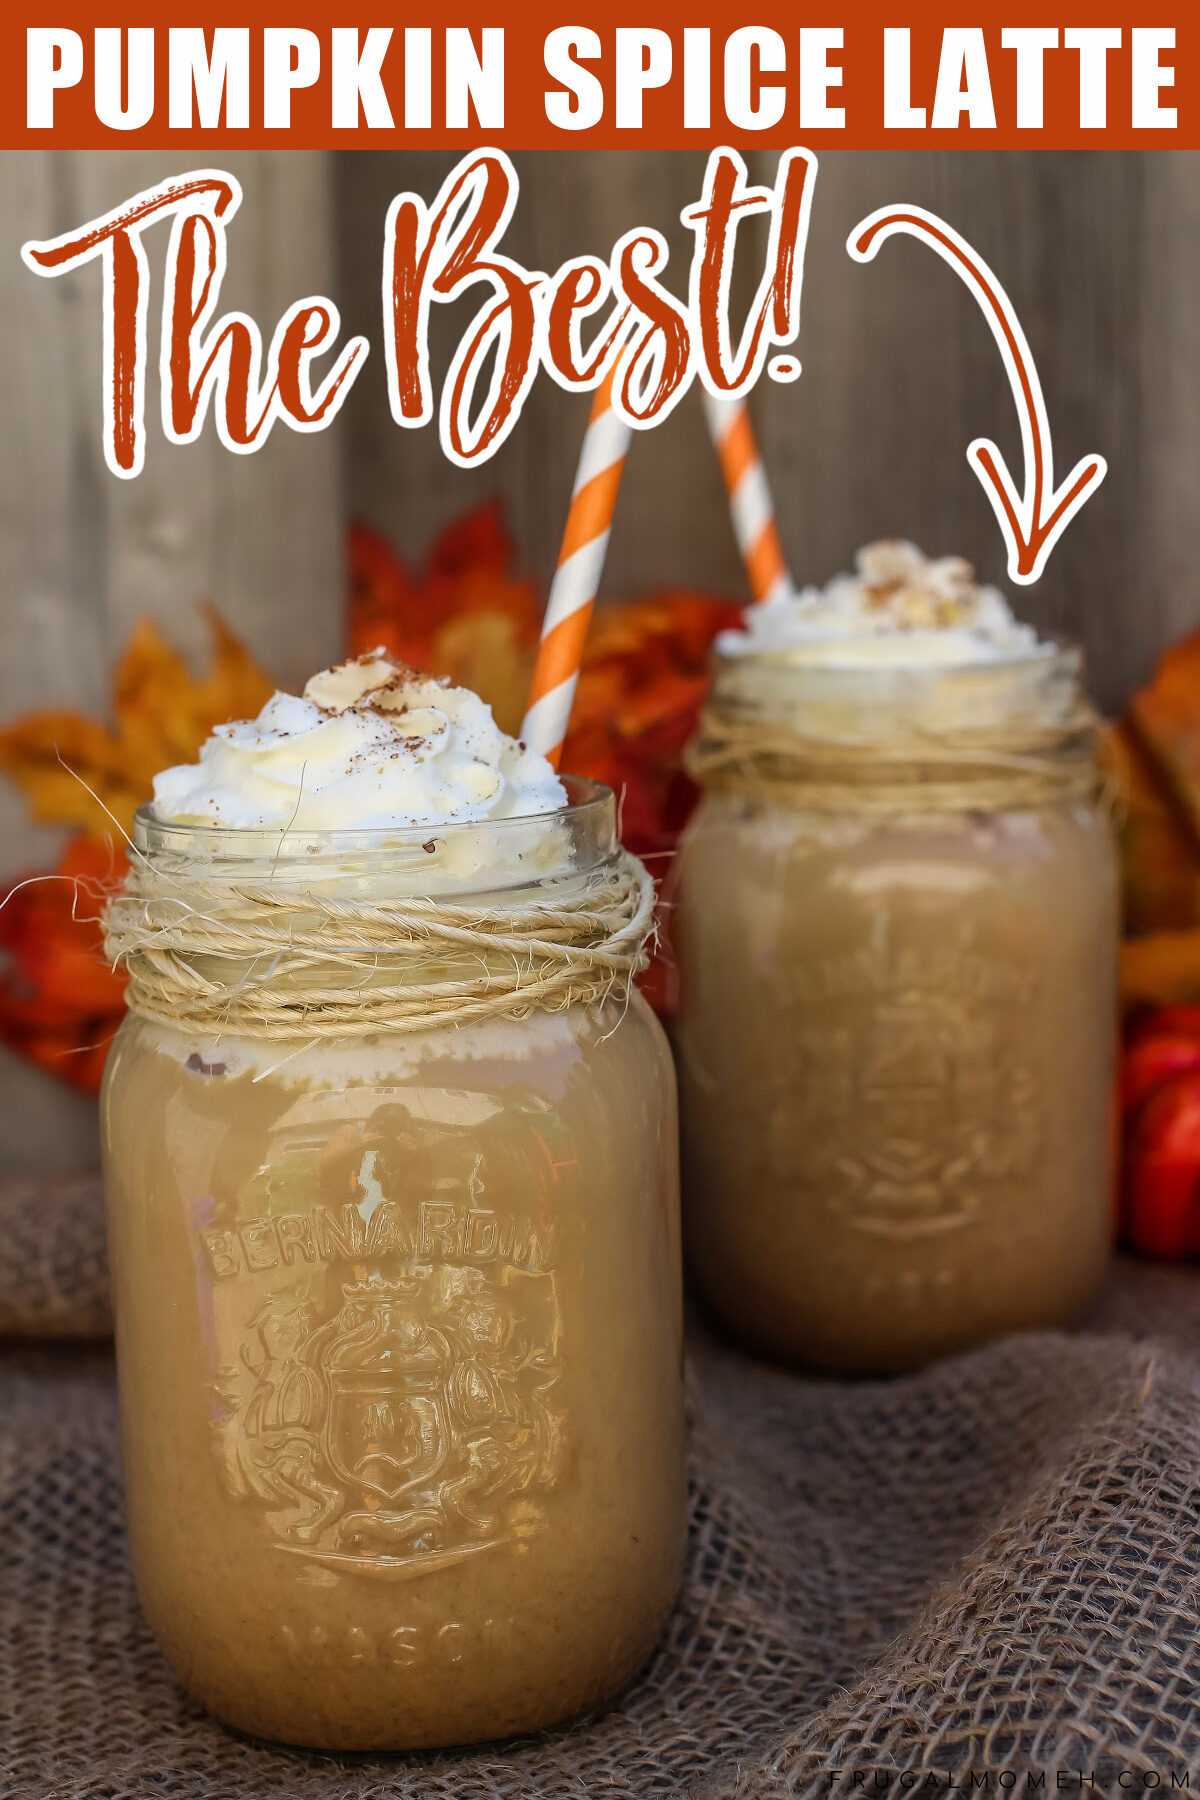 This Pumpkin Spice Latte is the BEST recipe for this classic! It's simple & quick to prepare. Get ready pumpkin spice lovers, Fall is coming!